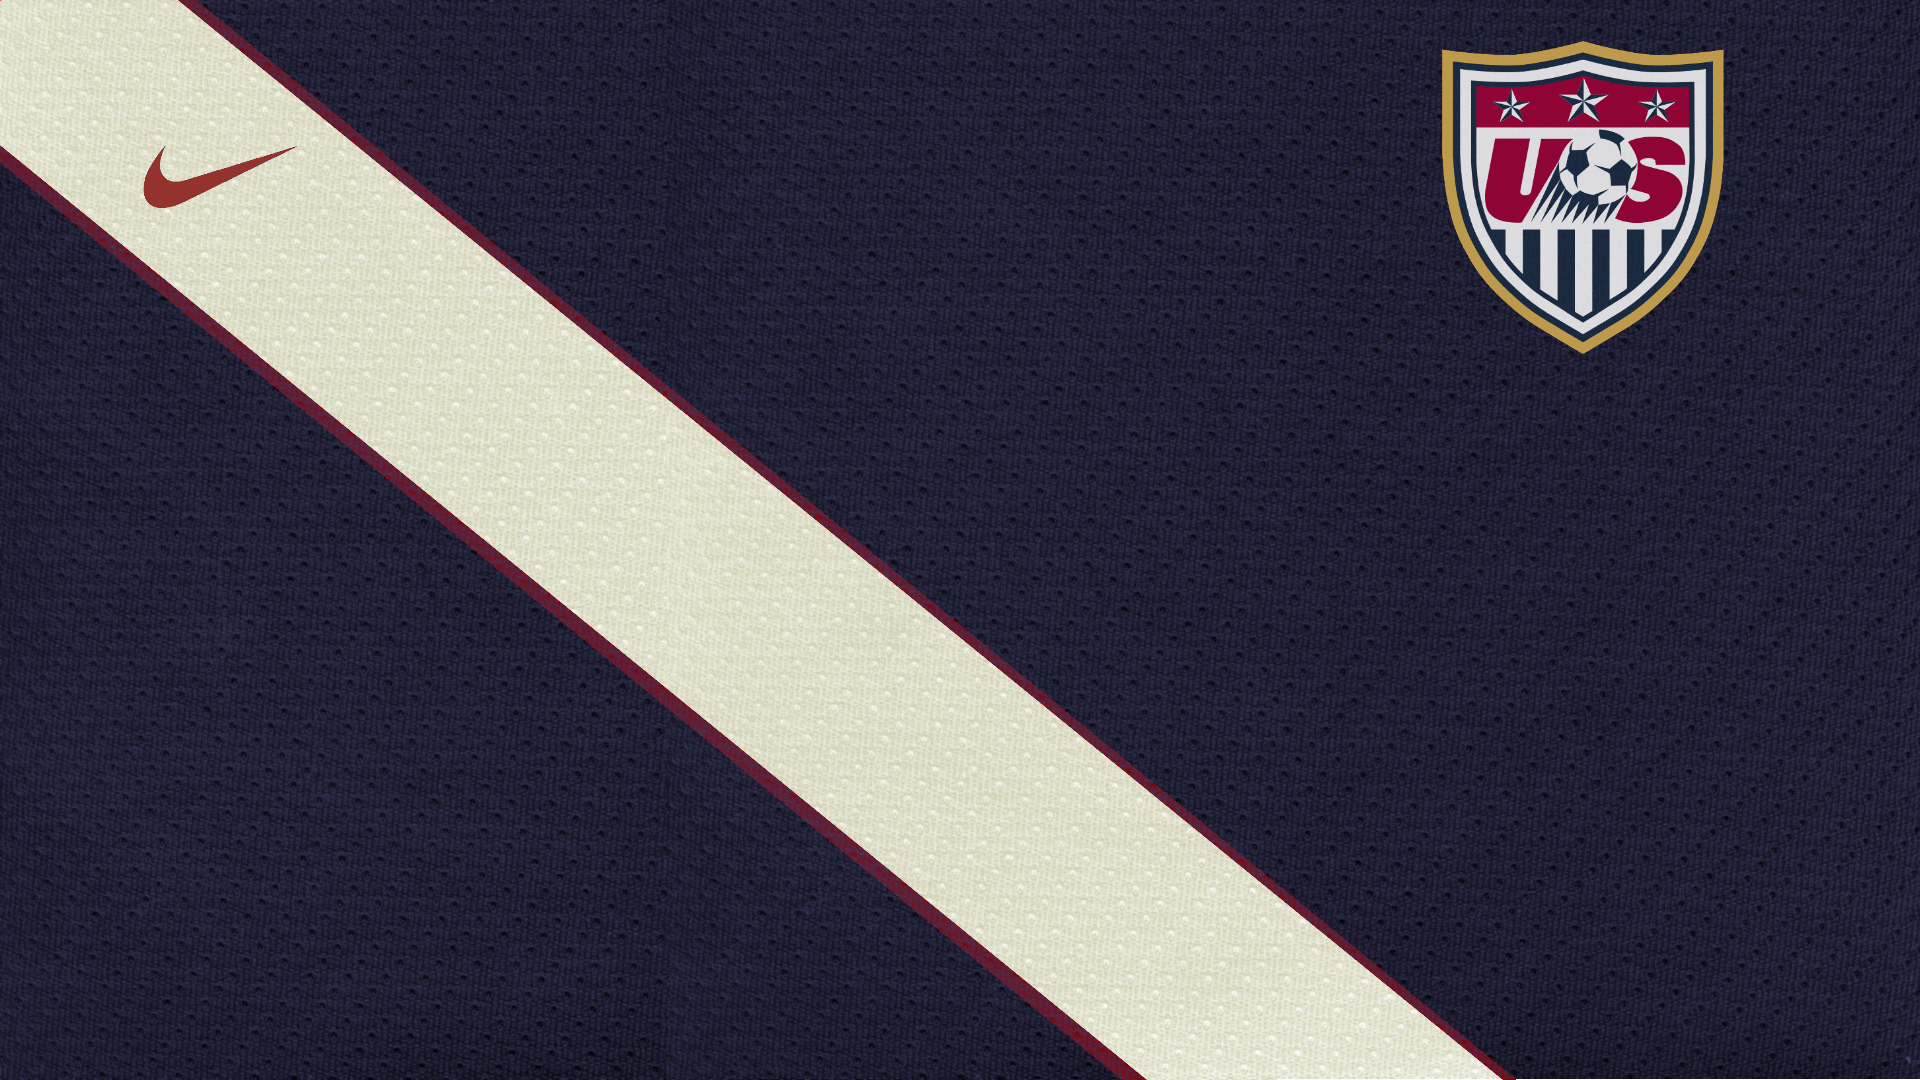 United States Football Wallpaper Backgrounds and Picture 1920x1080